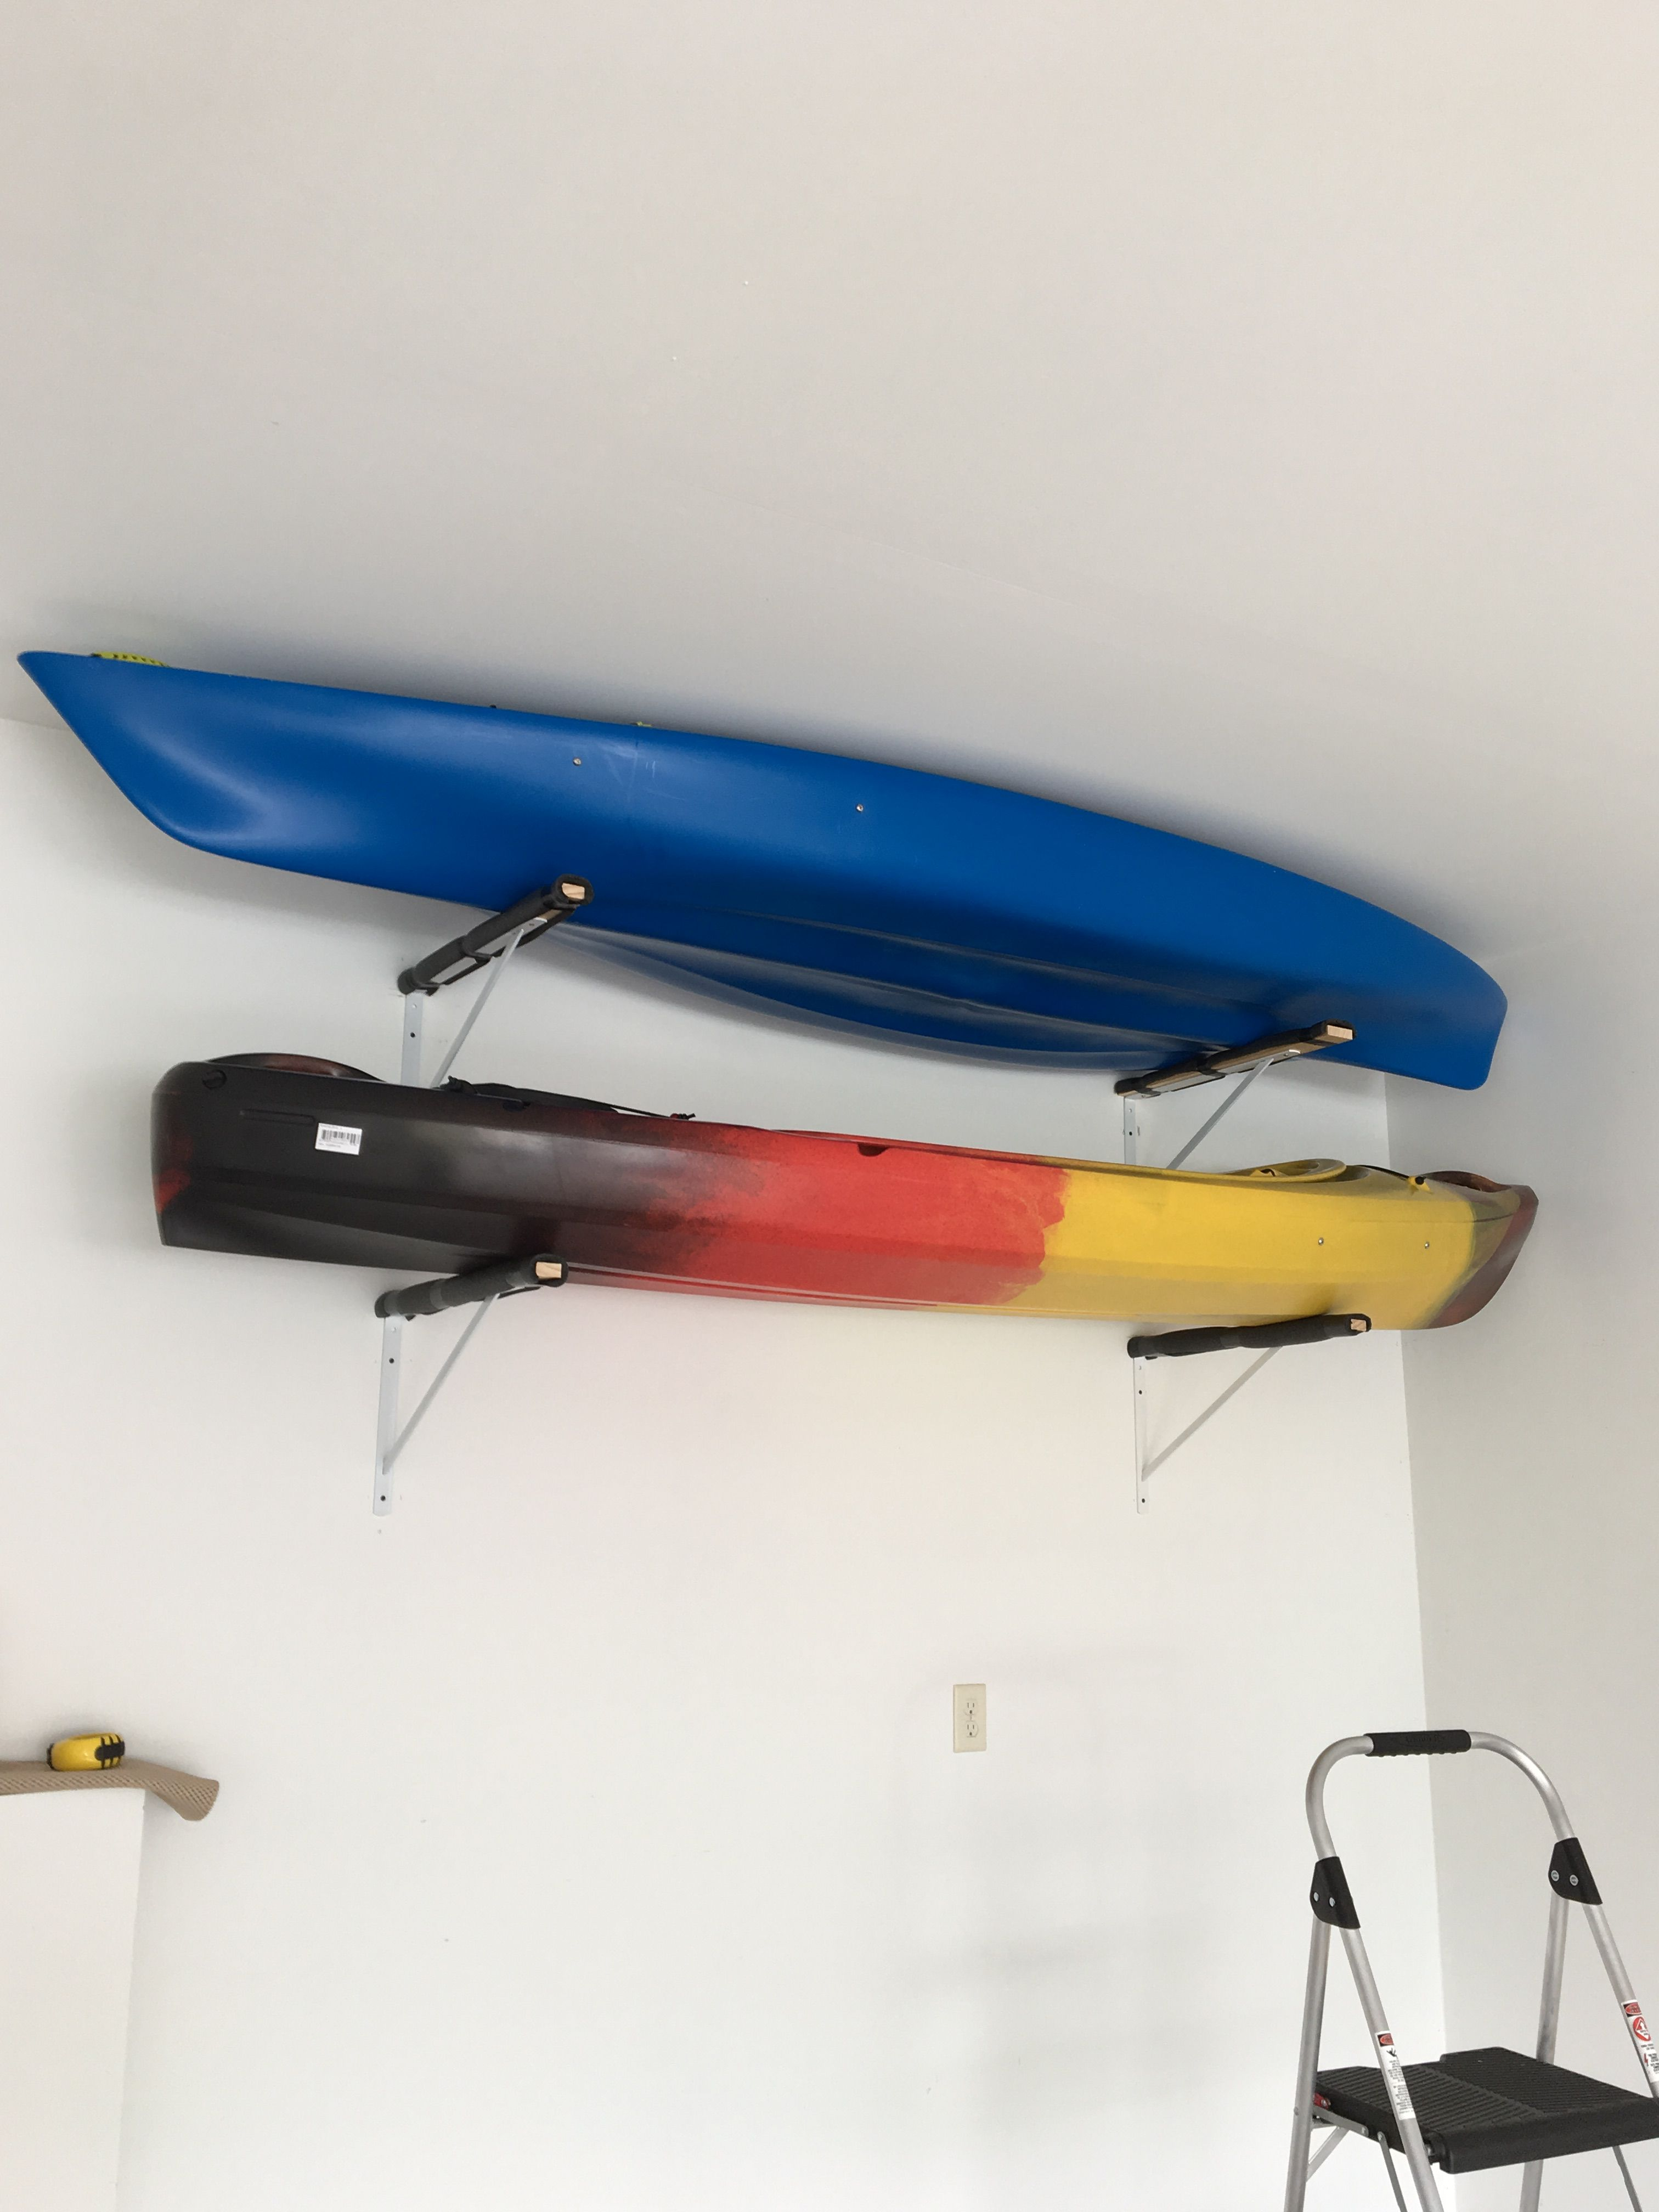 Superieur Kayak Storage With Shelf Brackets And Pipe Insulation